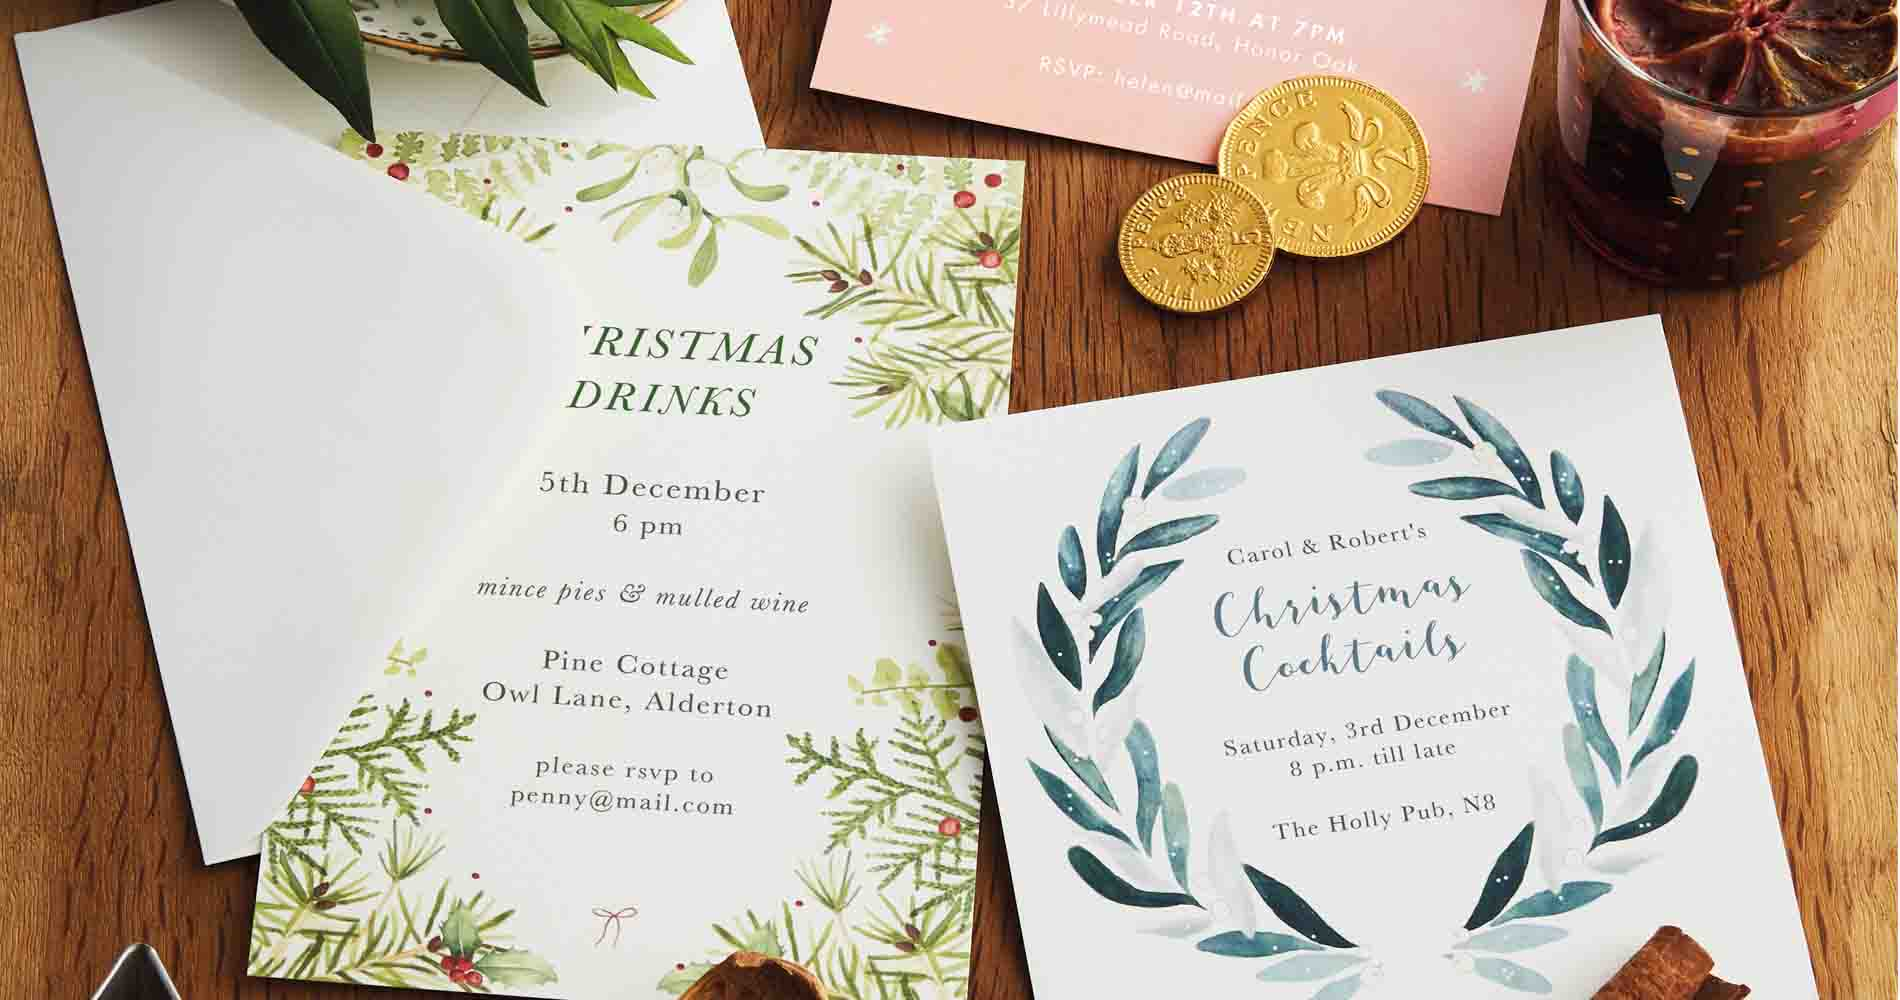 Papier Christmas Invitations